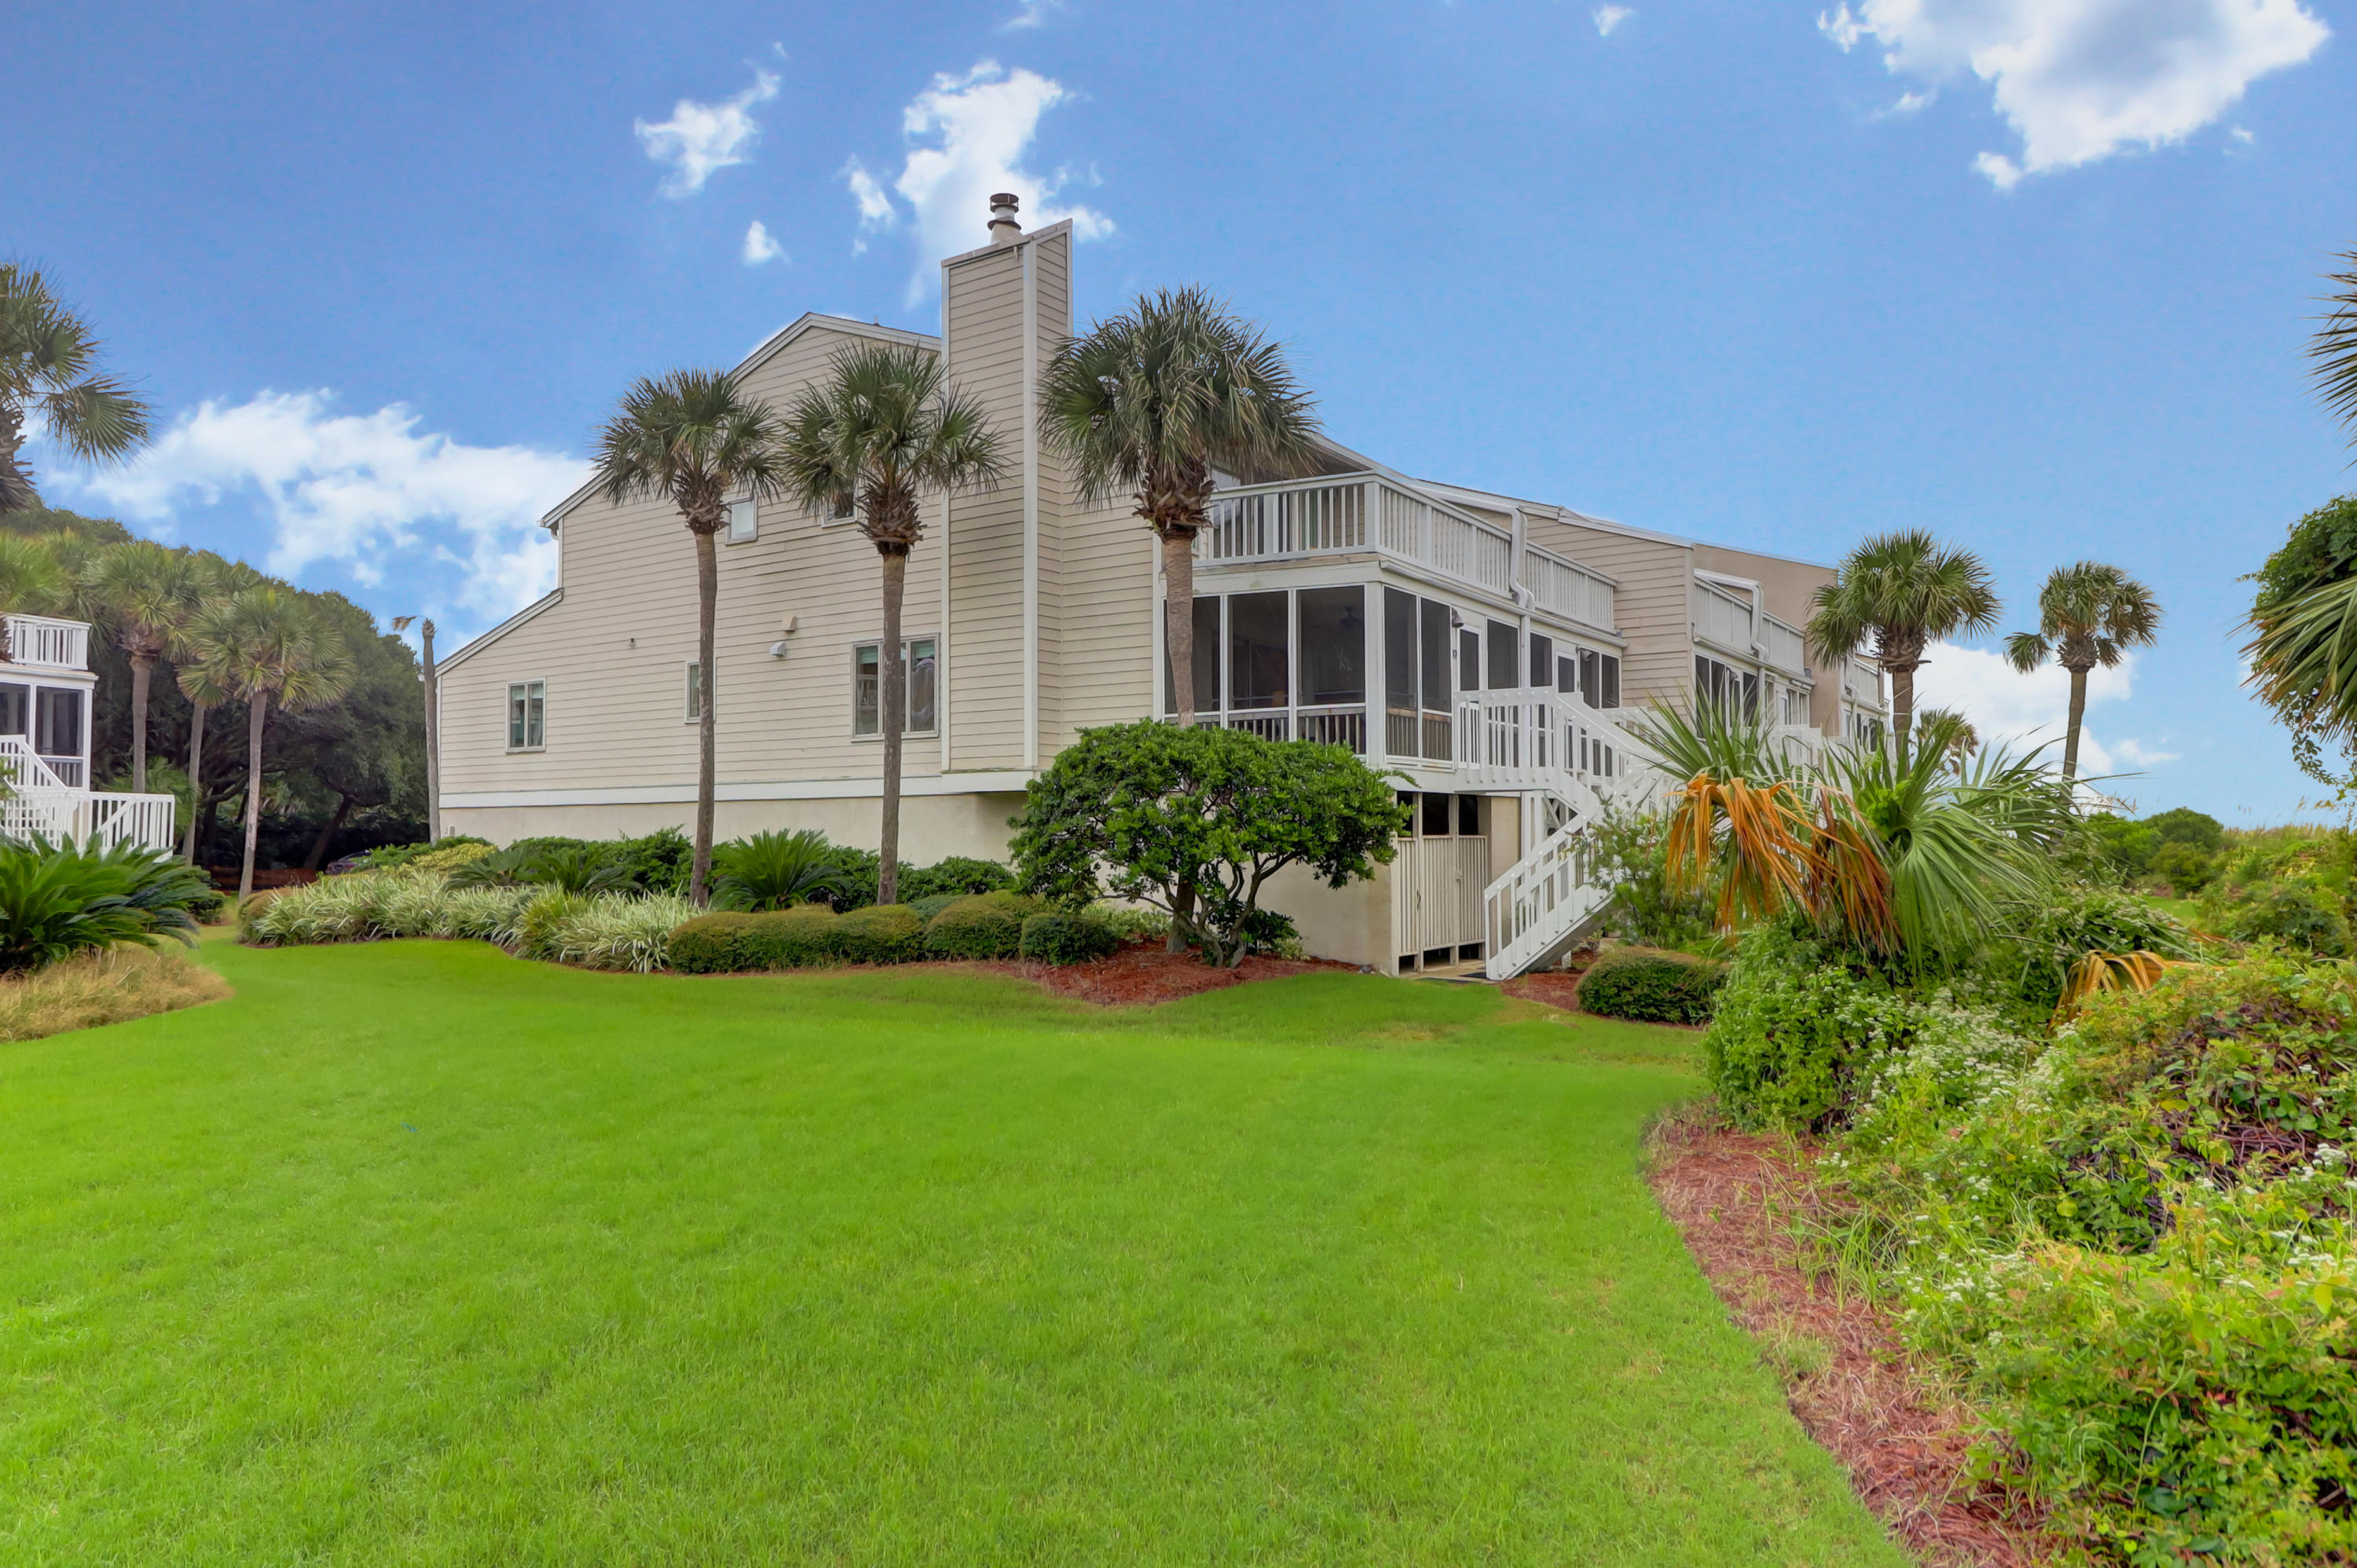 8 Beach Club Villas NULL Isle of Palms $1,525,000.00